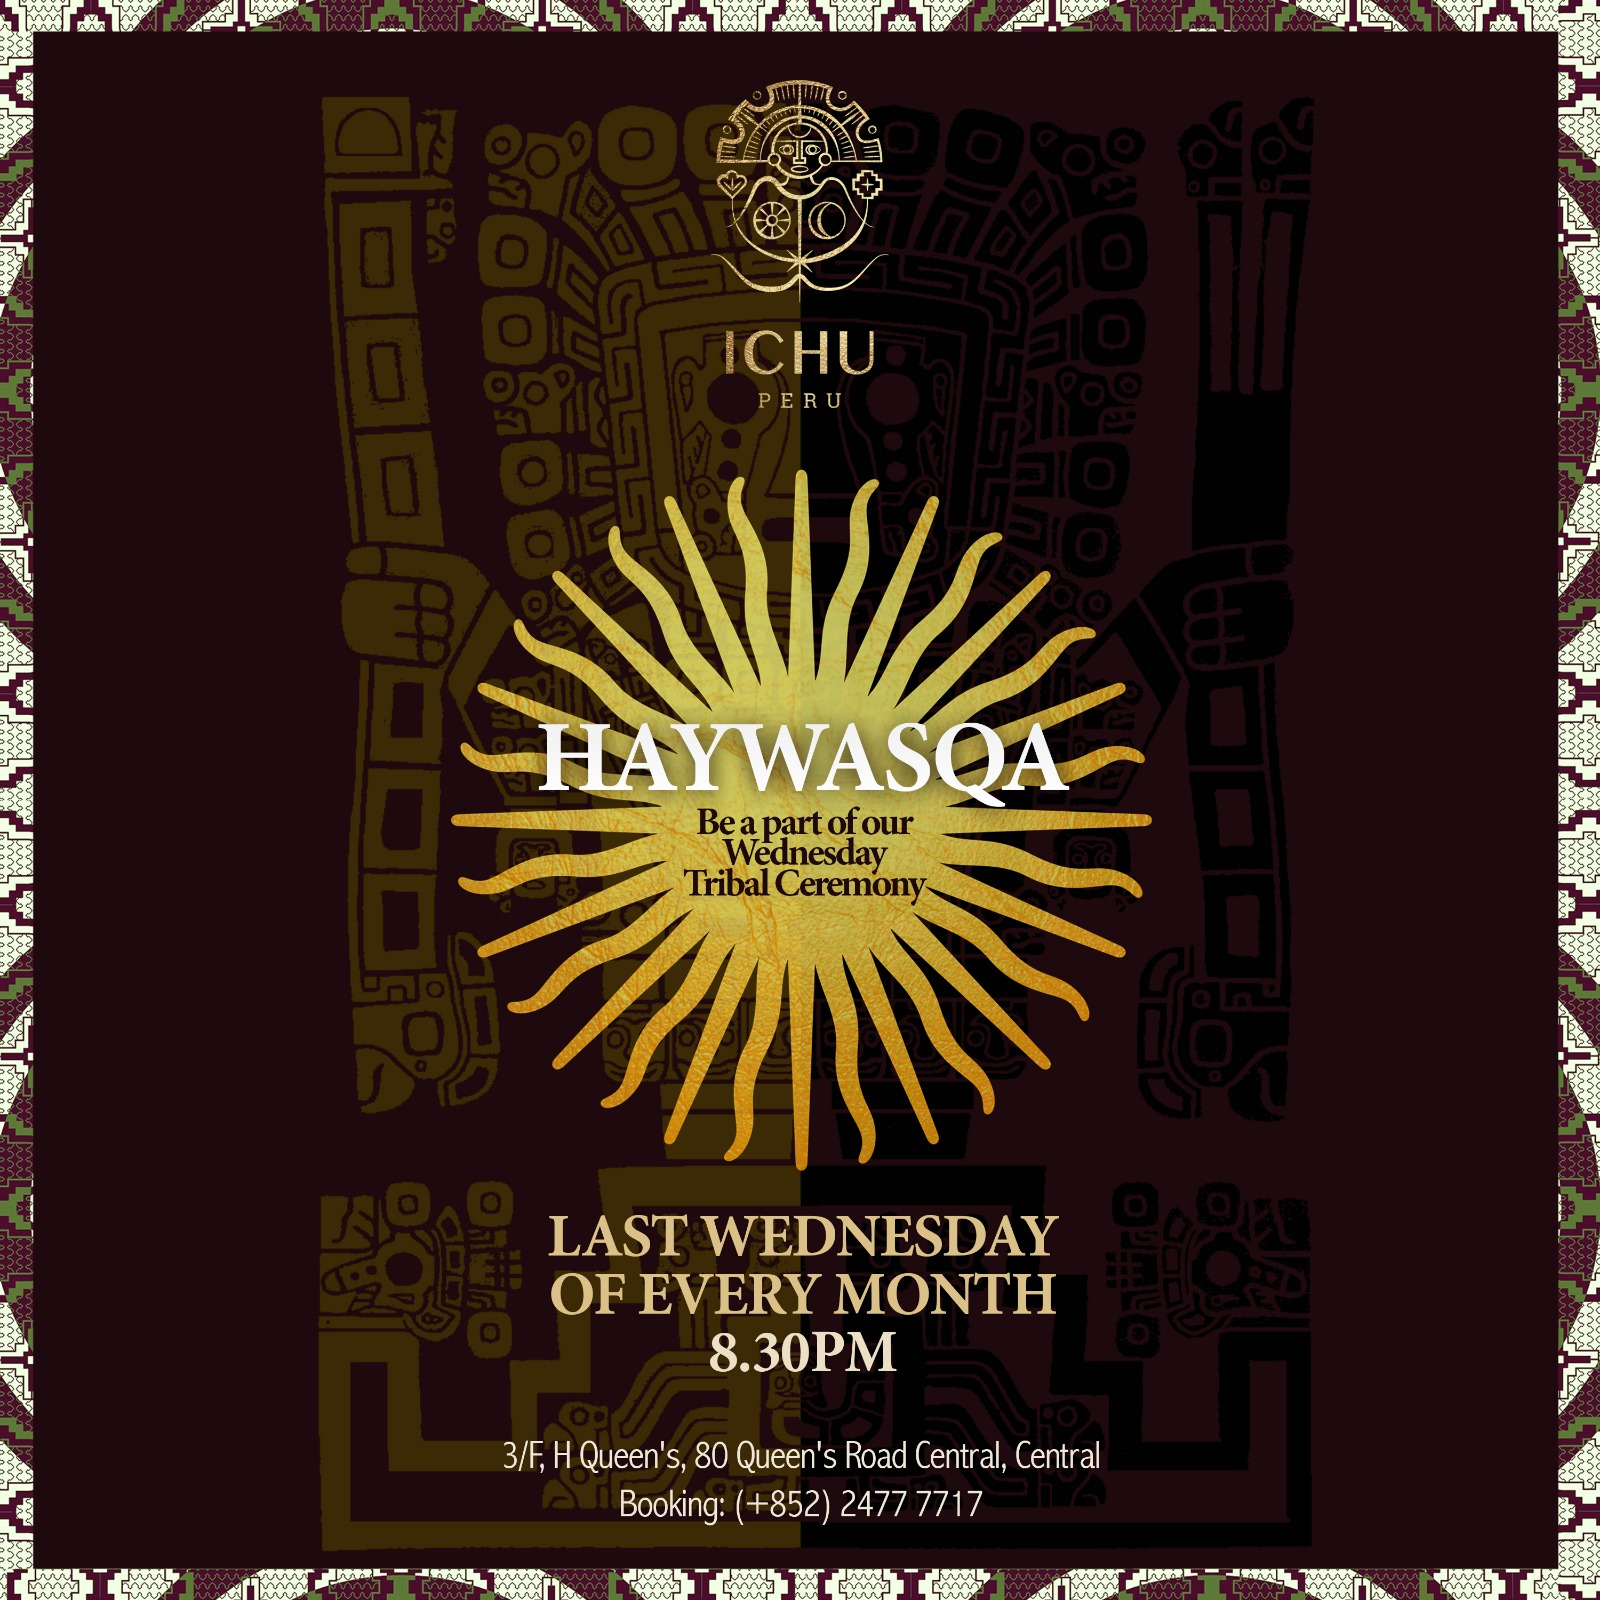 ICHU Restaurant & Bar | Events | HAYWASQA Ceremony